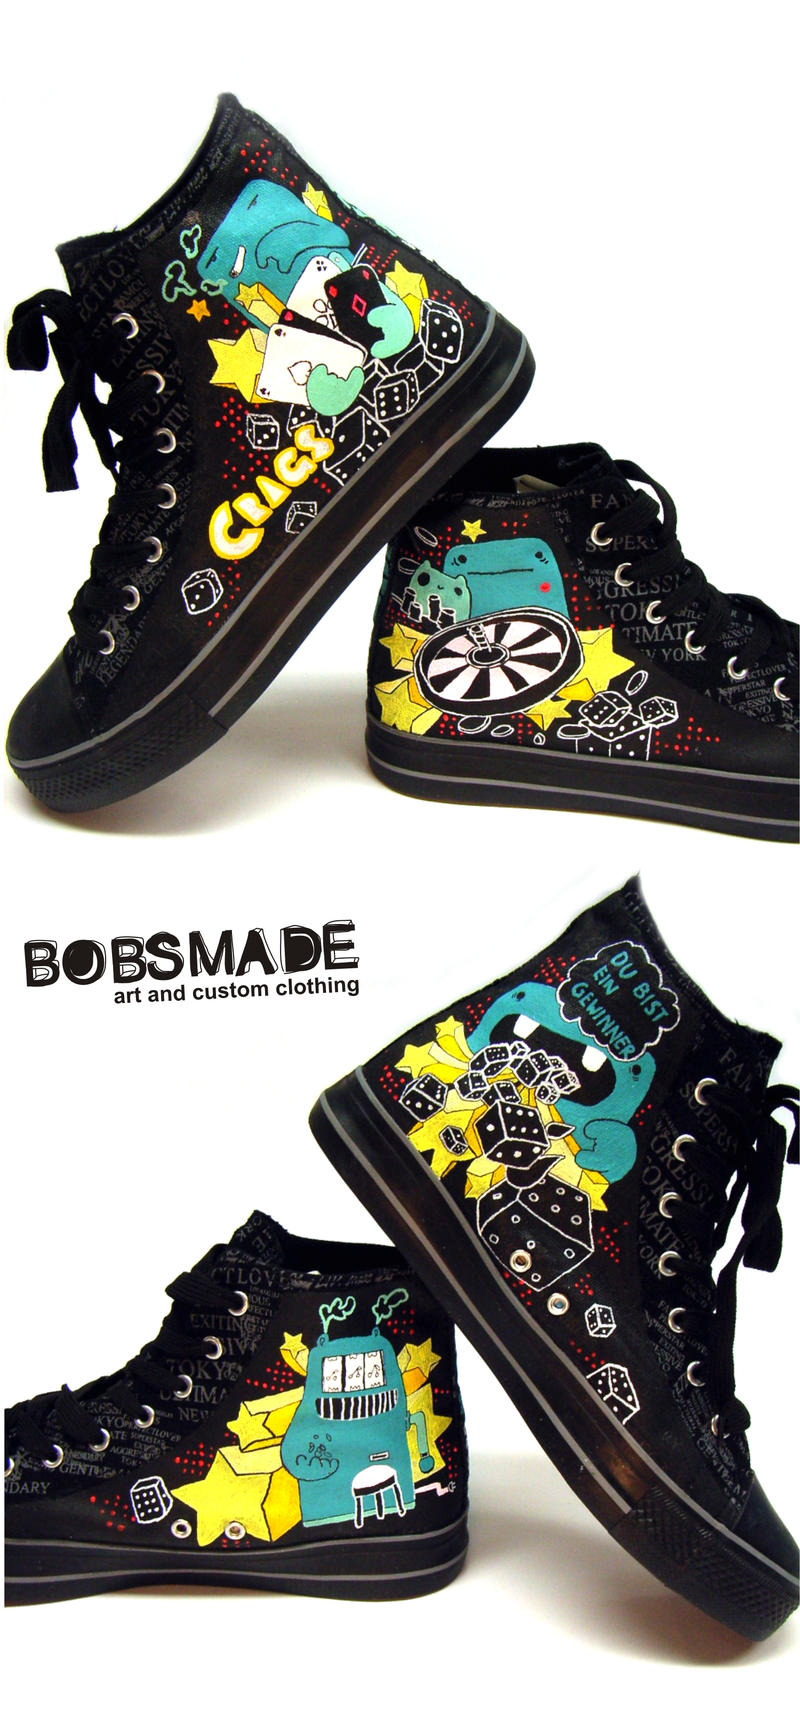 Bobsmade_shoes-casino by Bobsmade